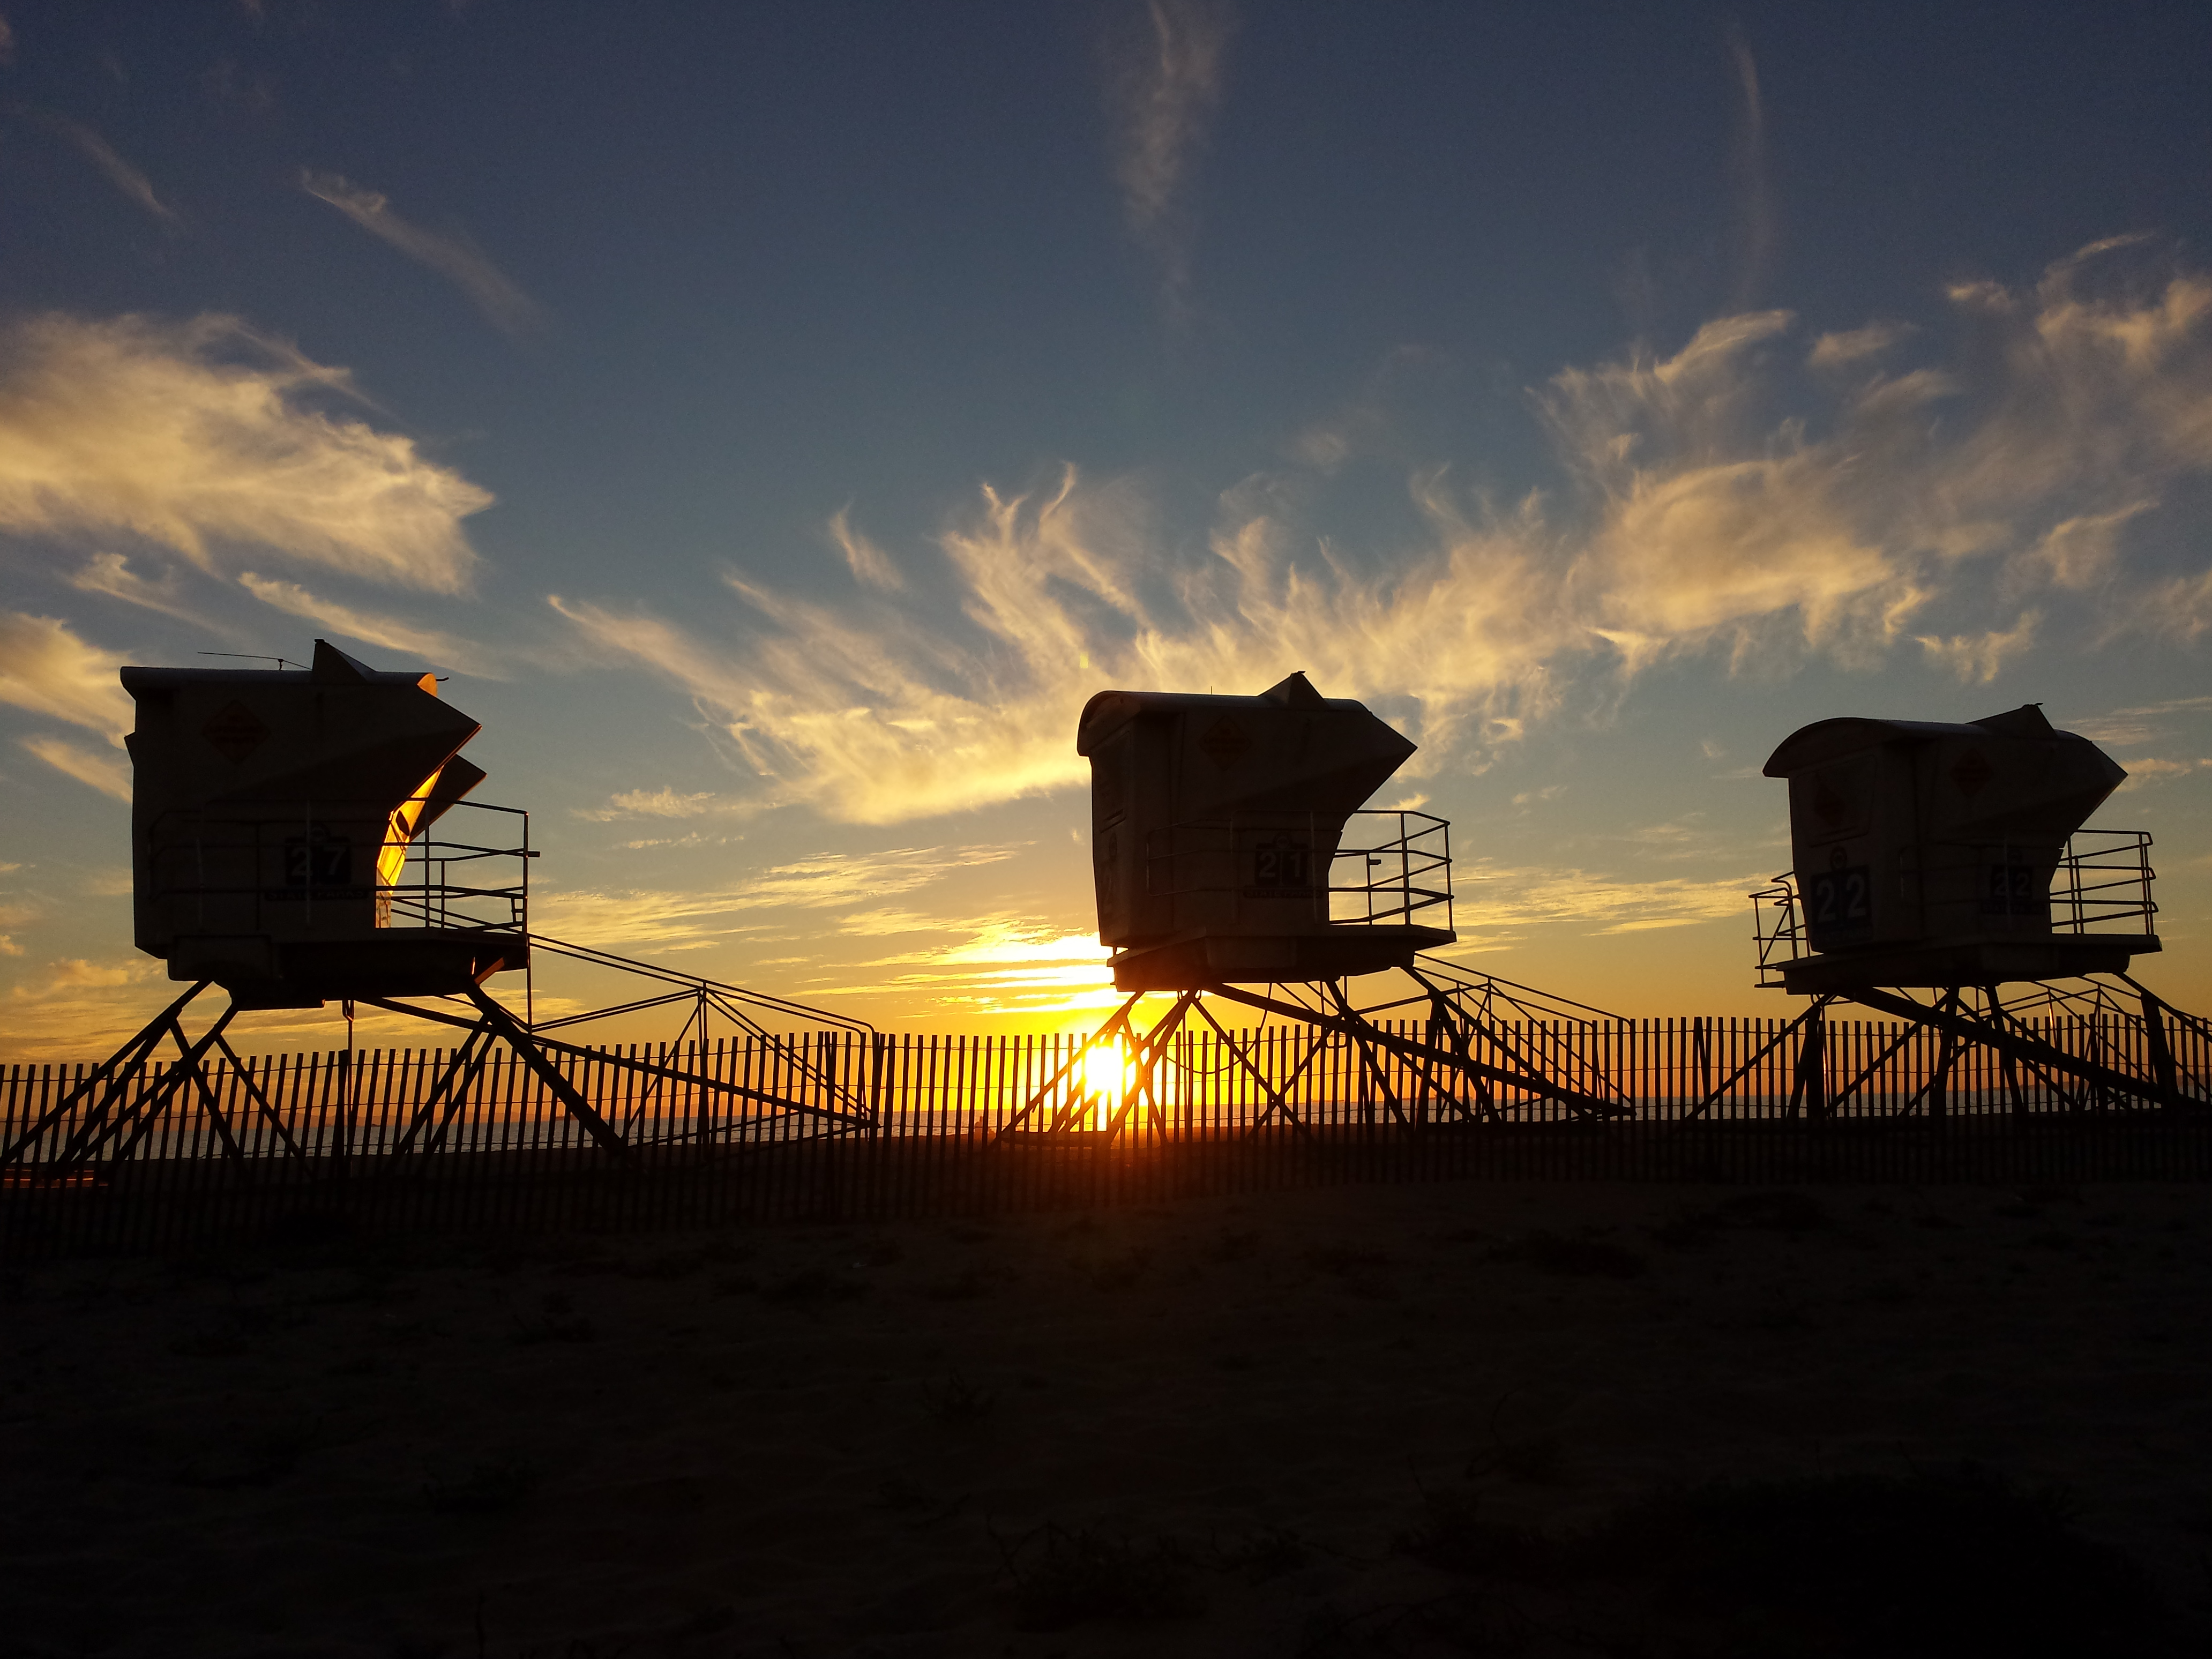 Sunset Lifeguard Stations